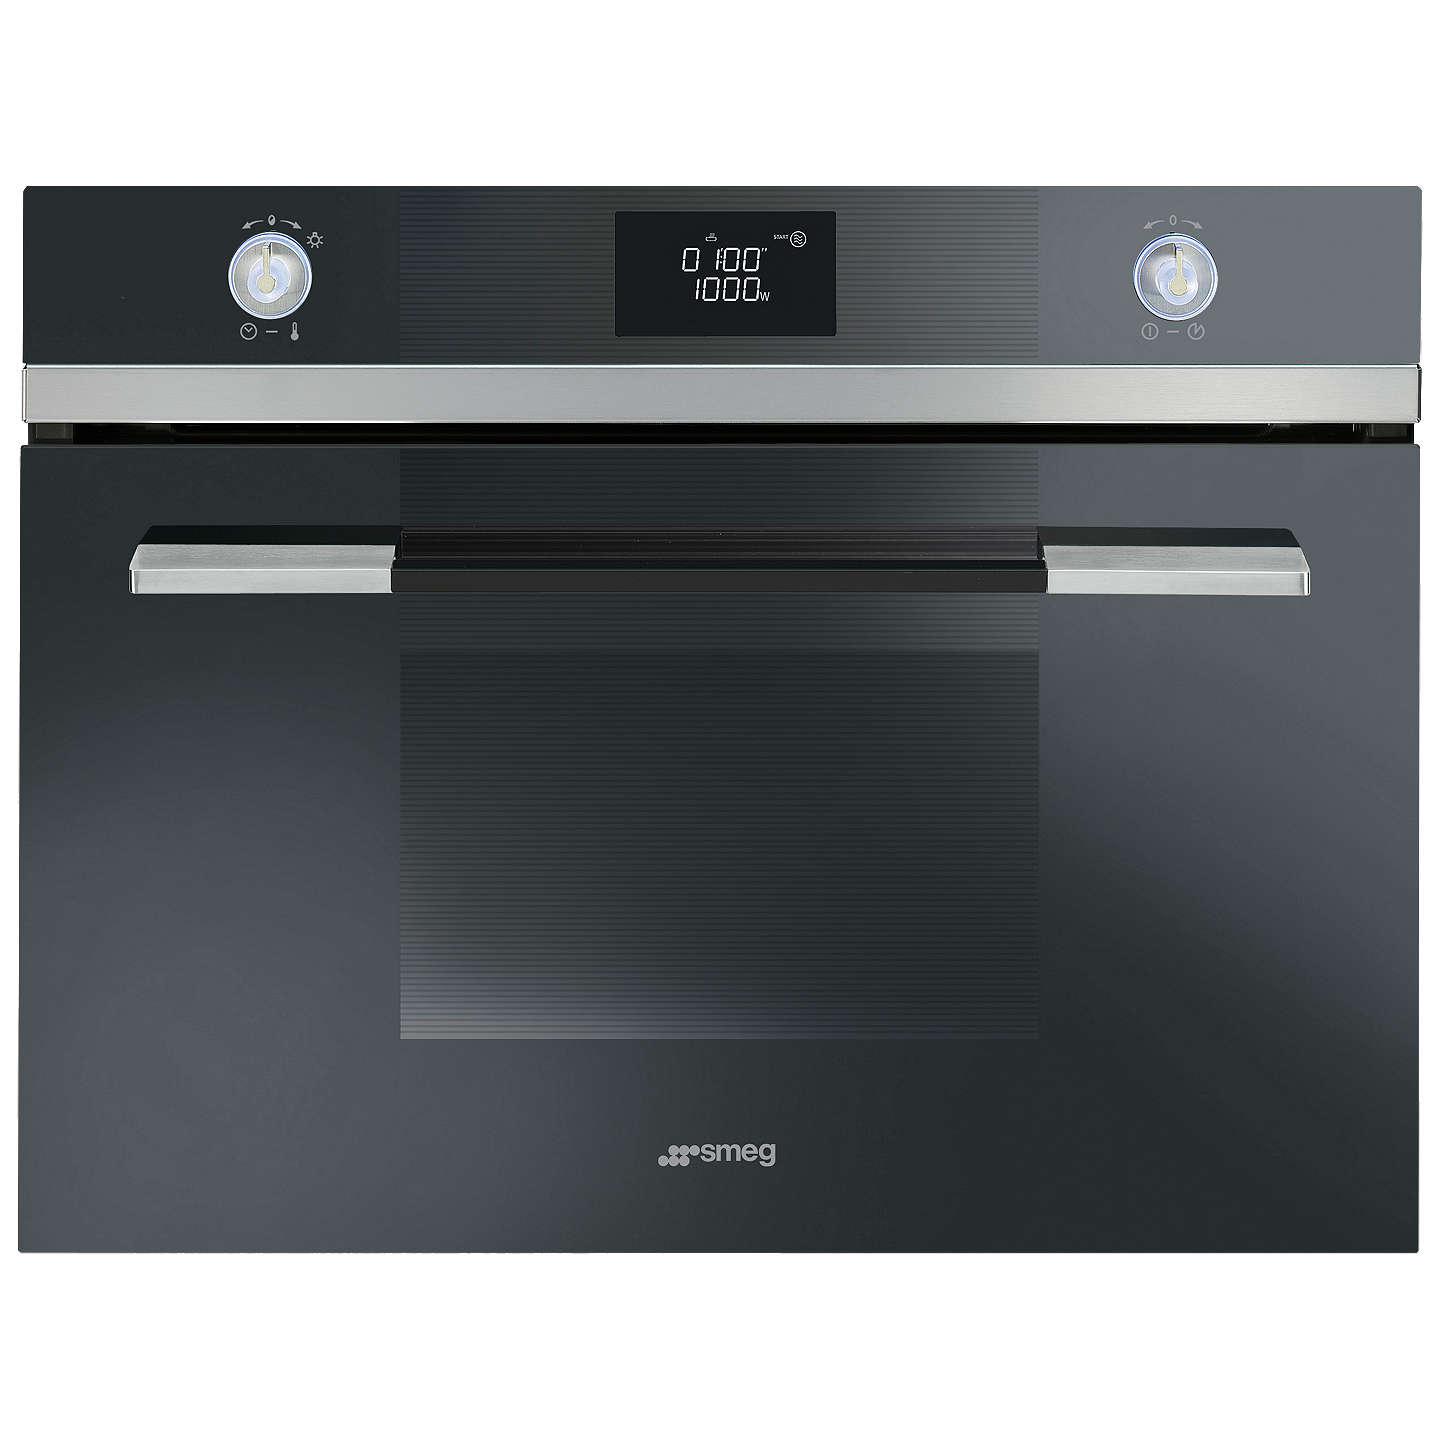 BuySmeg SF4120MN Linea Aesthetic Microwave Oven with Grill, Black Online at johnlewis.com